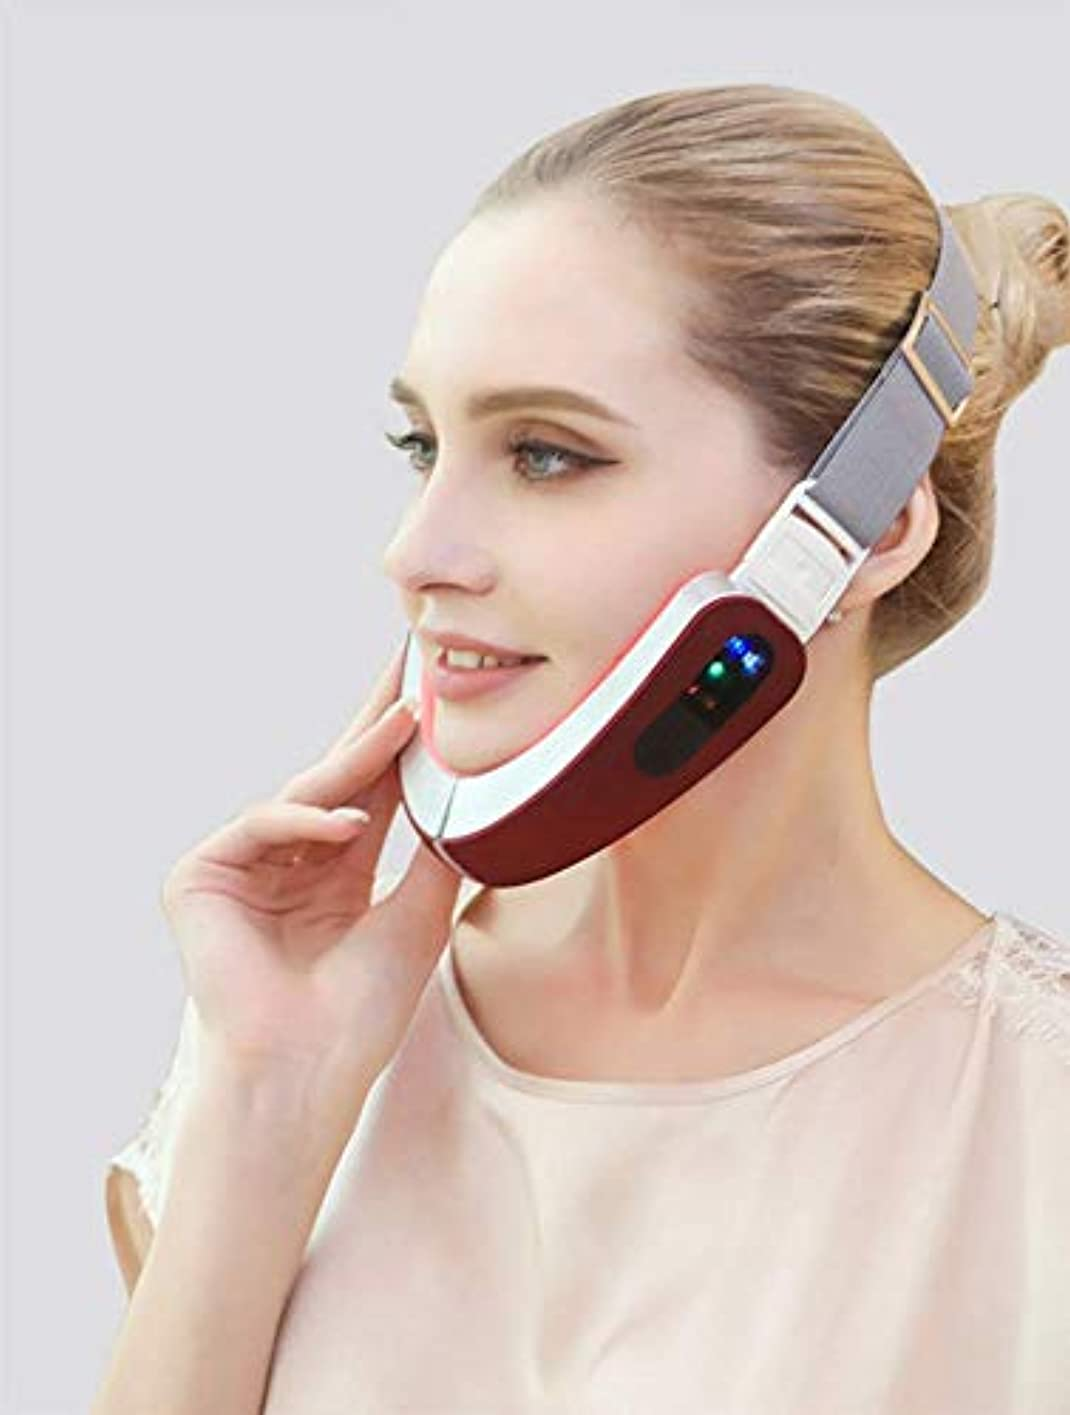 慎重聖人思い出Lquide Mart Voice Thin Face Artifact Small V Face Bandage Firming Facial Beauty Bar Rejuvenation Massage Instrument...